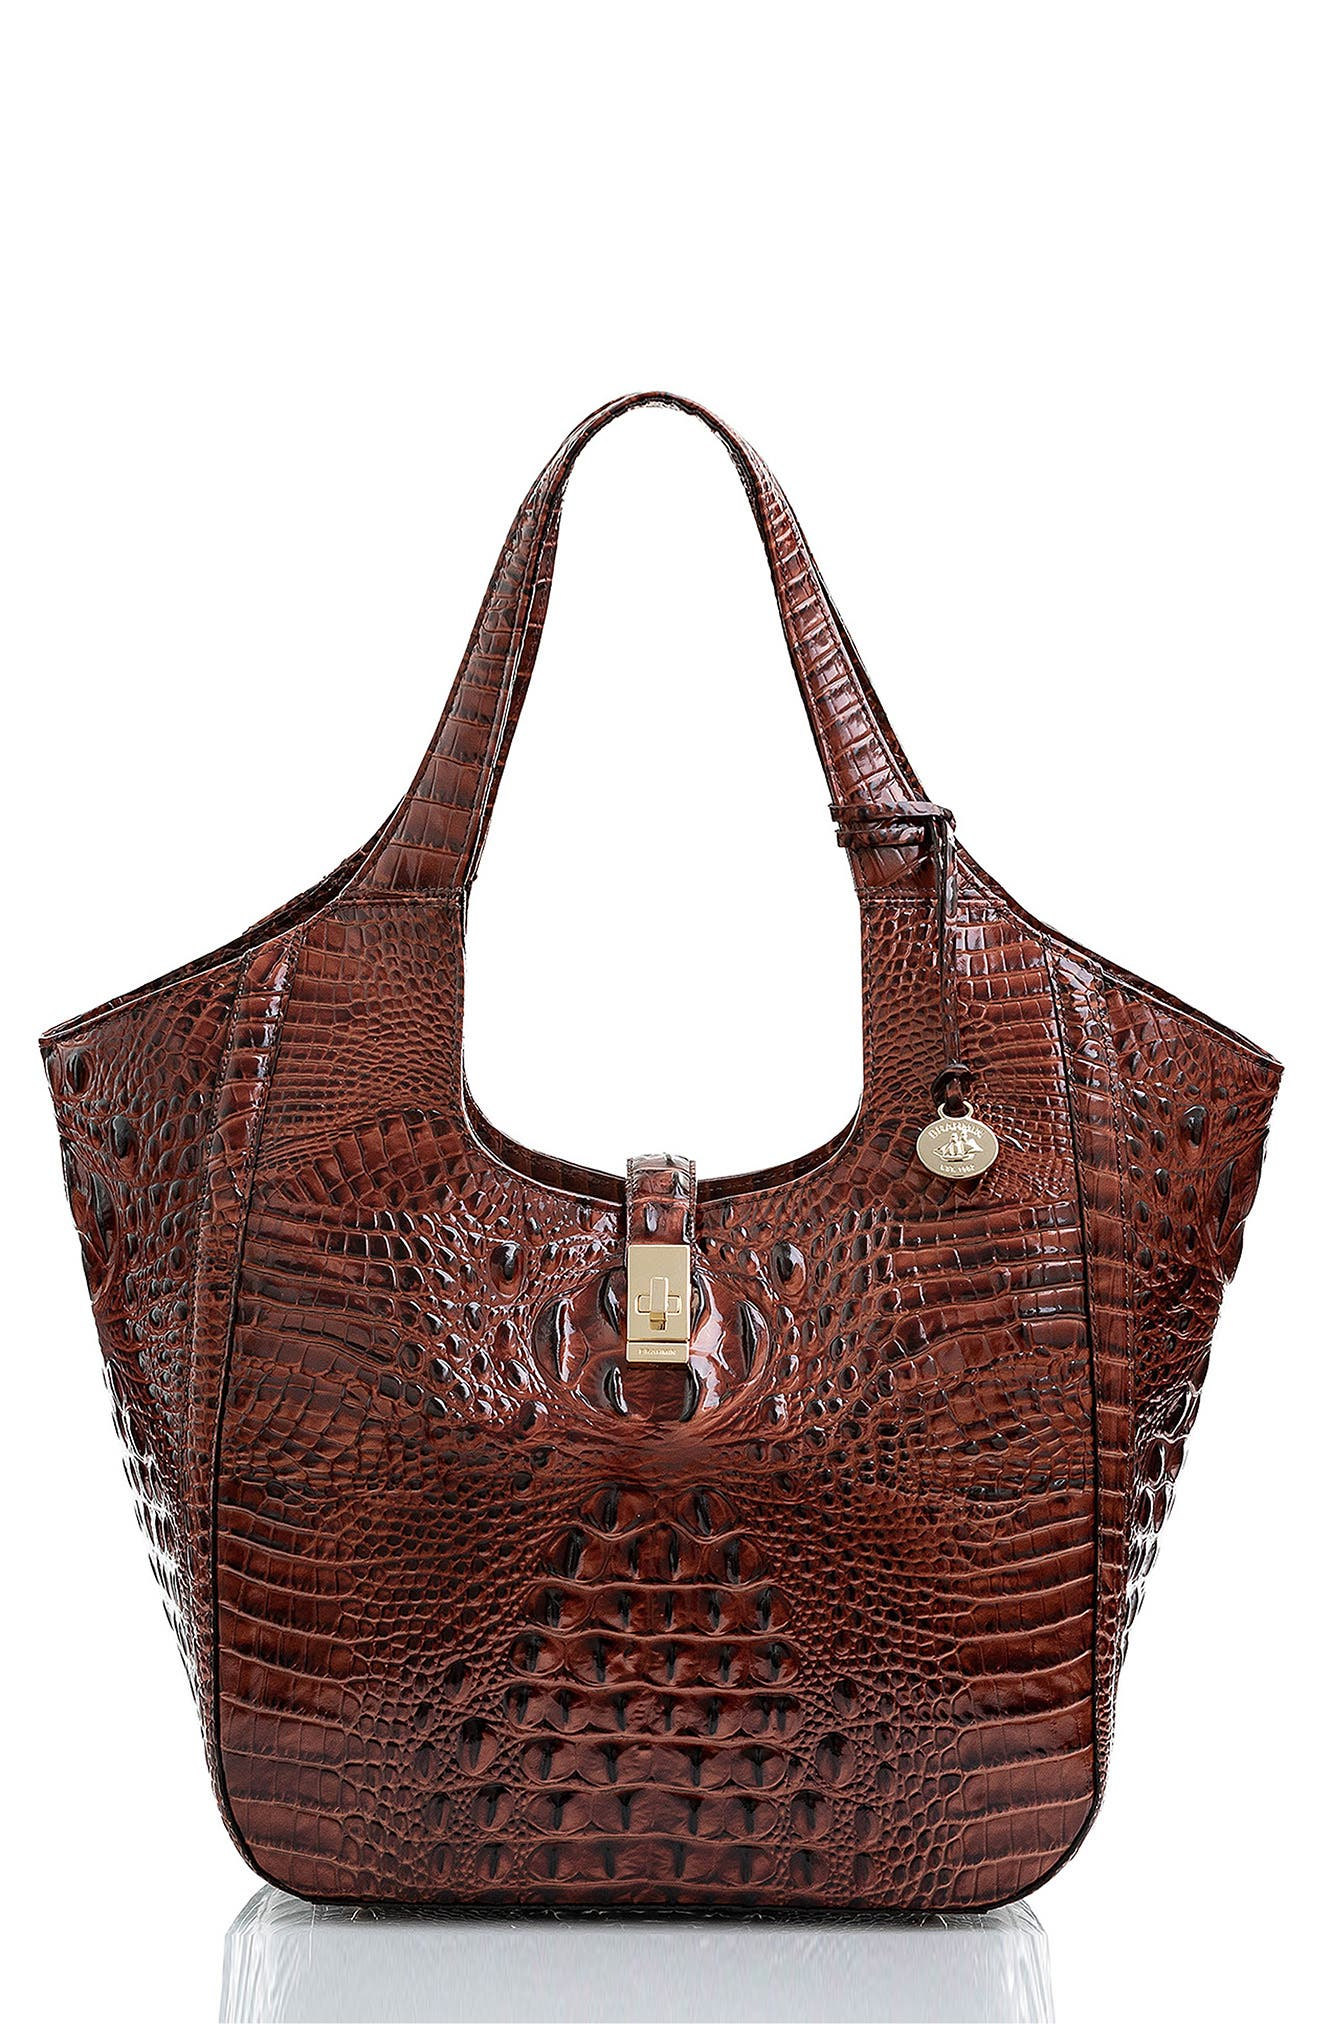 Carla Croc Embossed Leather Tote